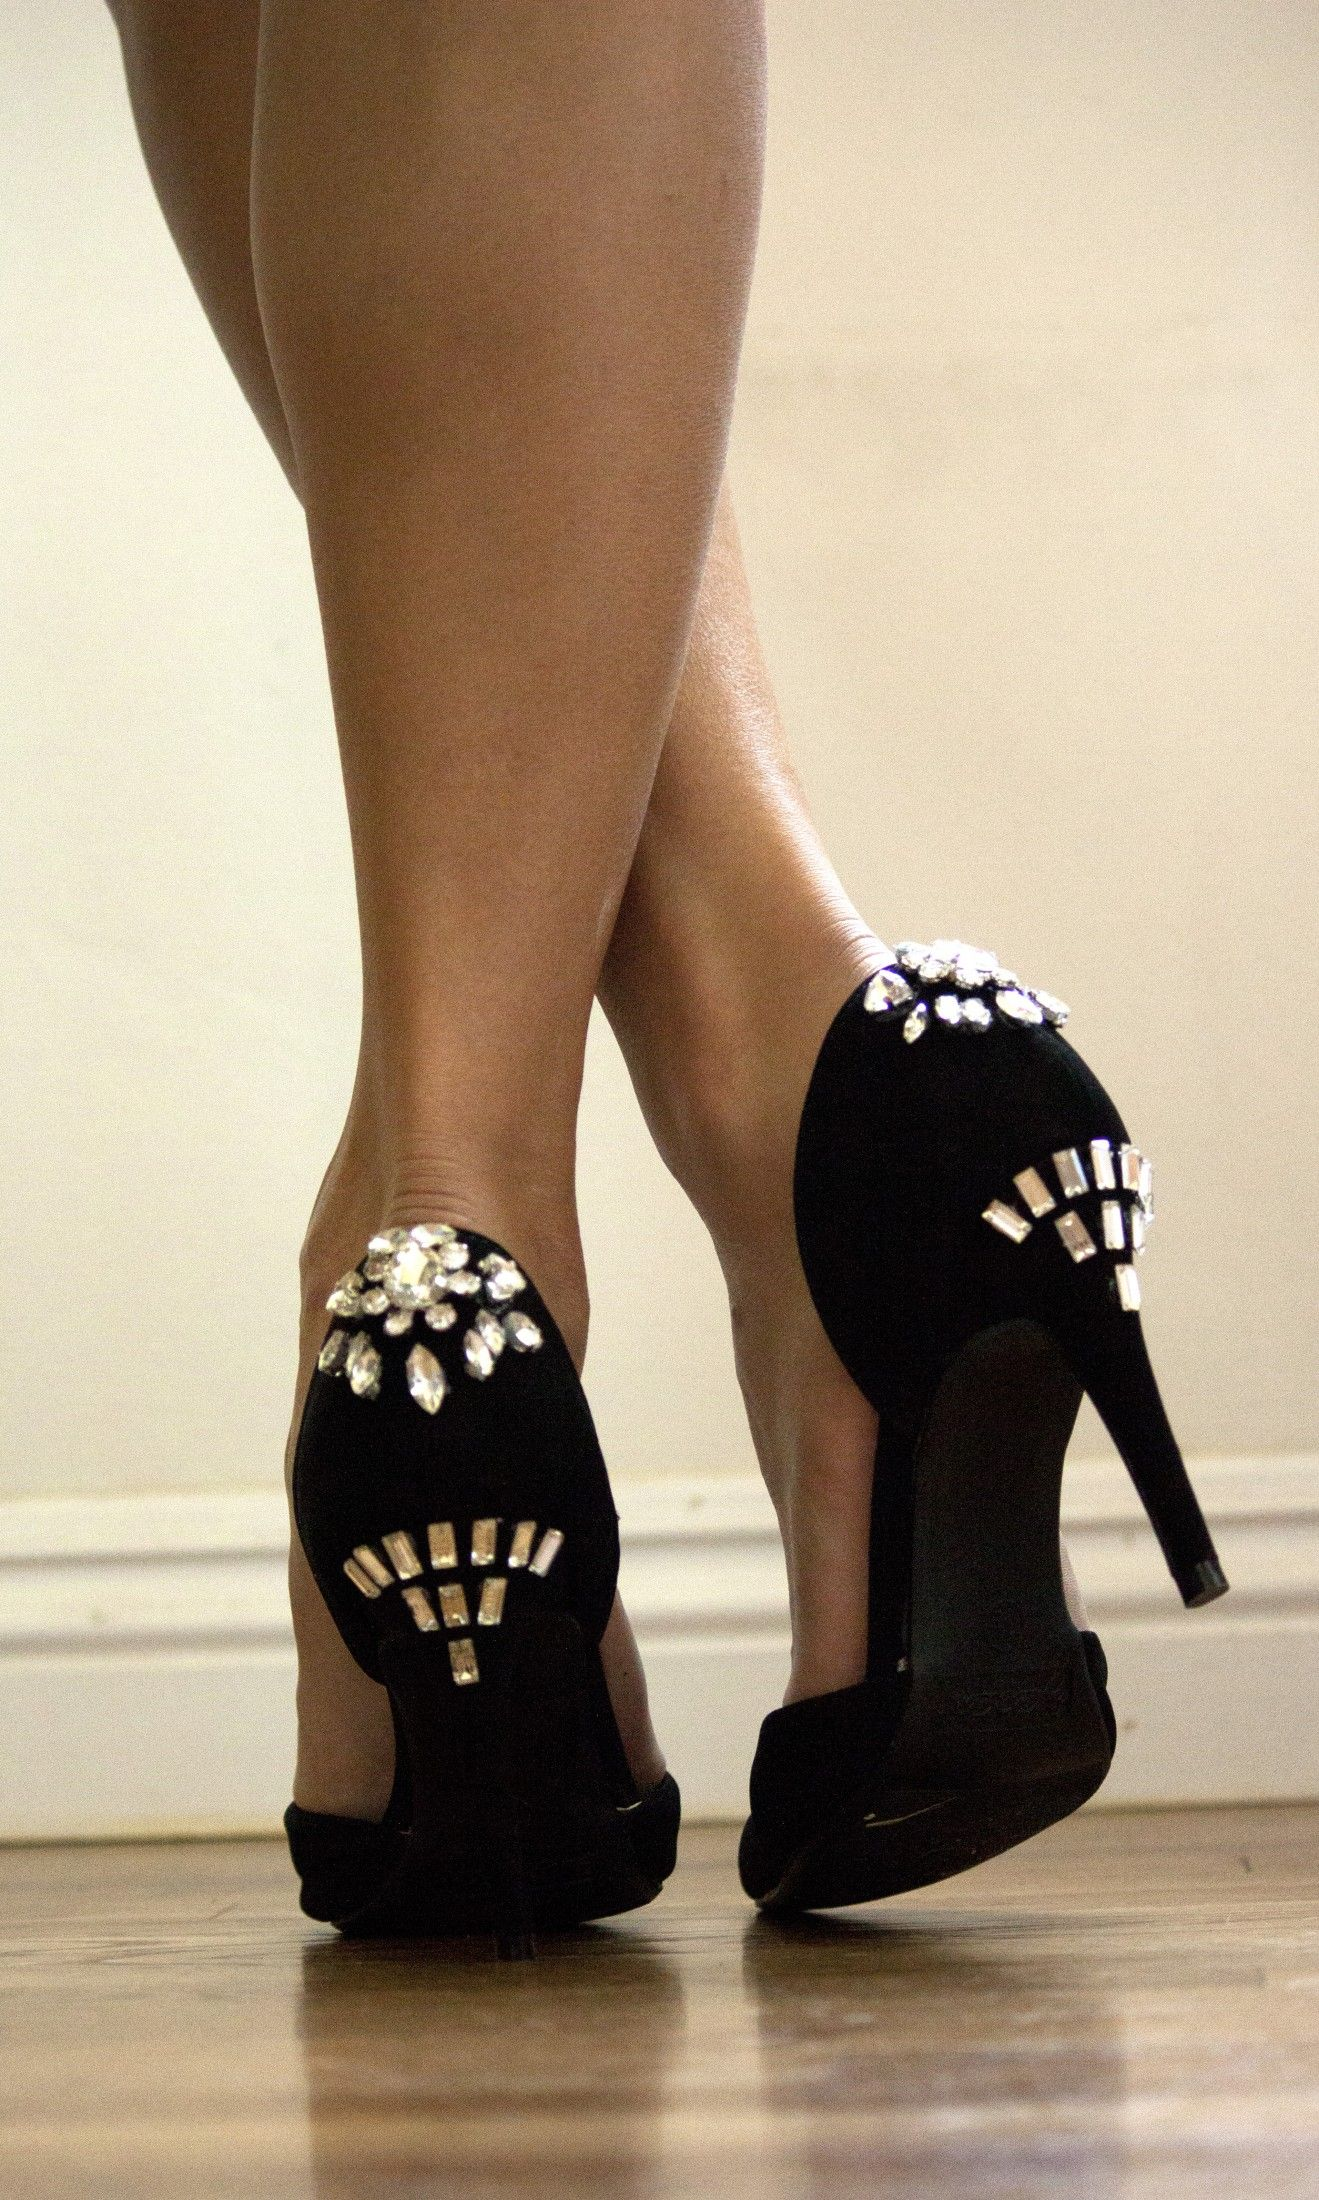 bejeweled heels - make a classic pair of pumps look designer chic